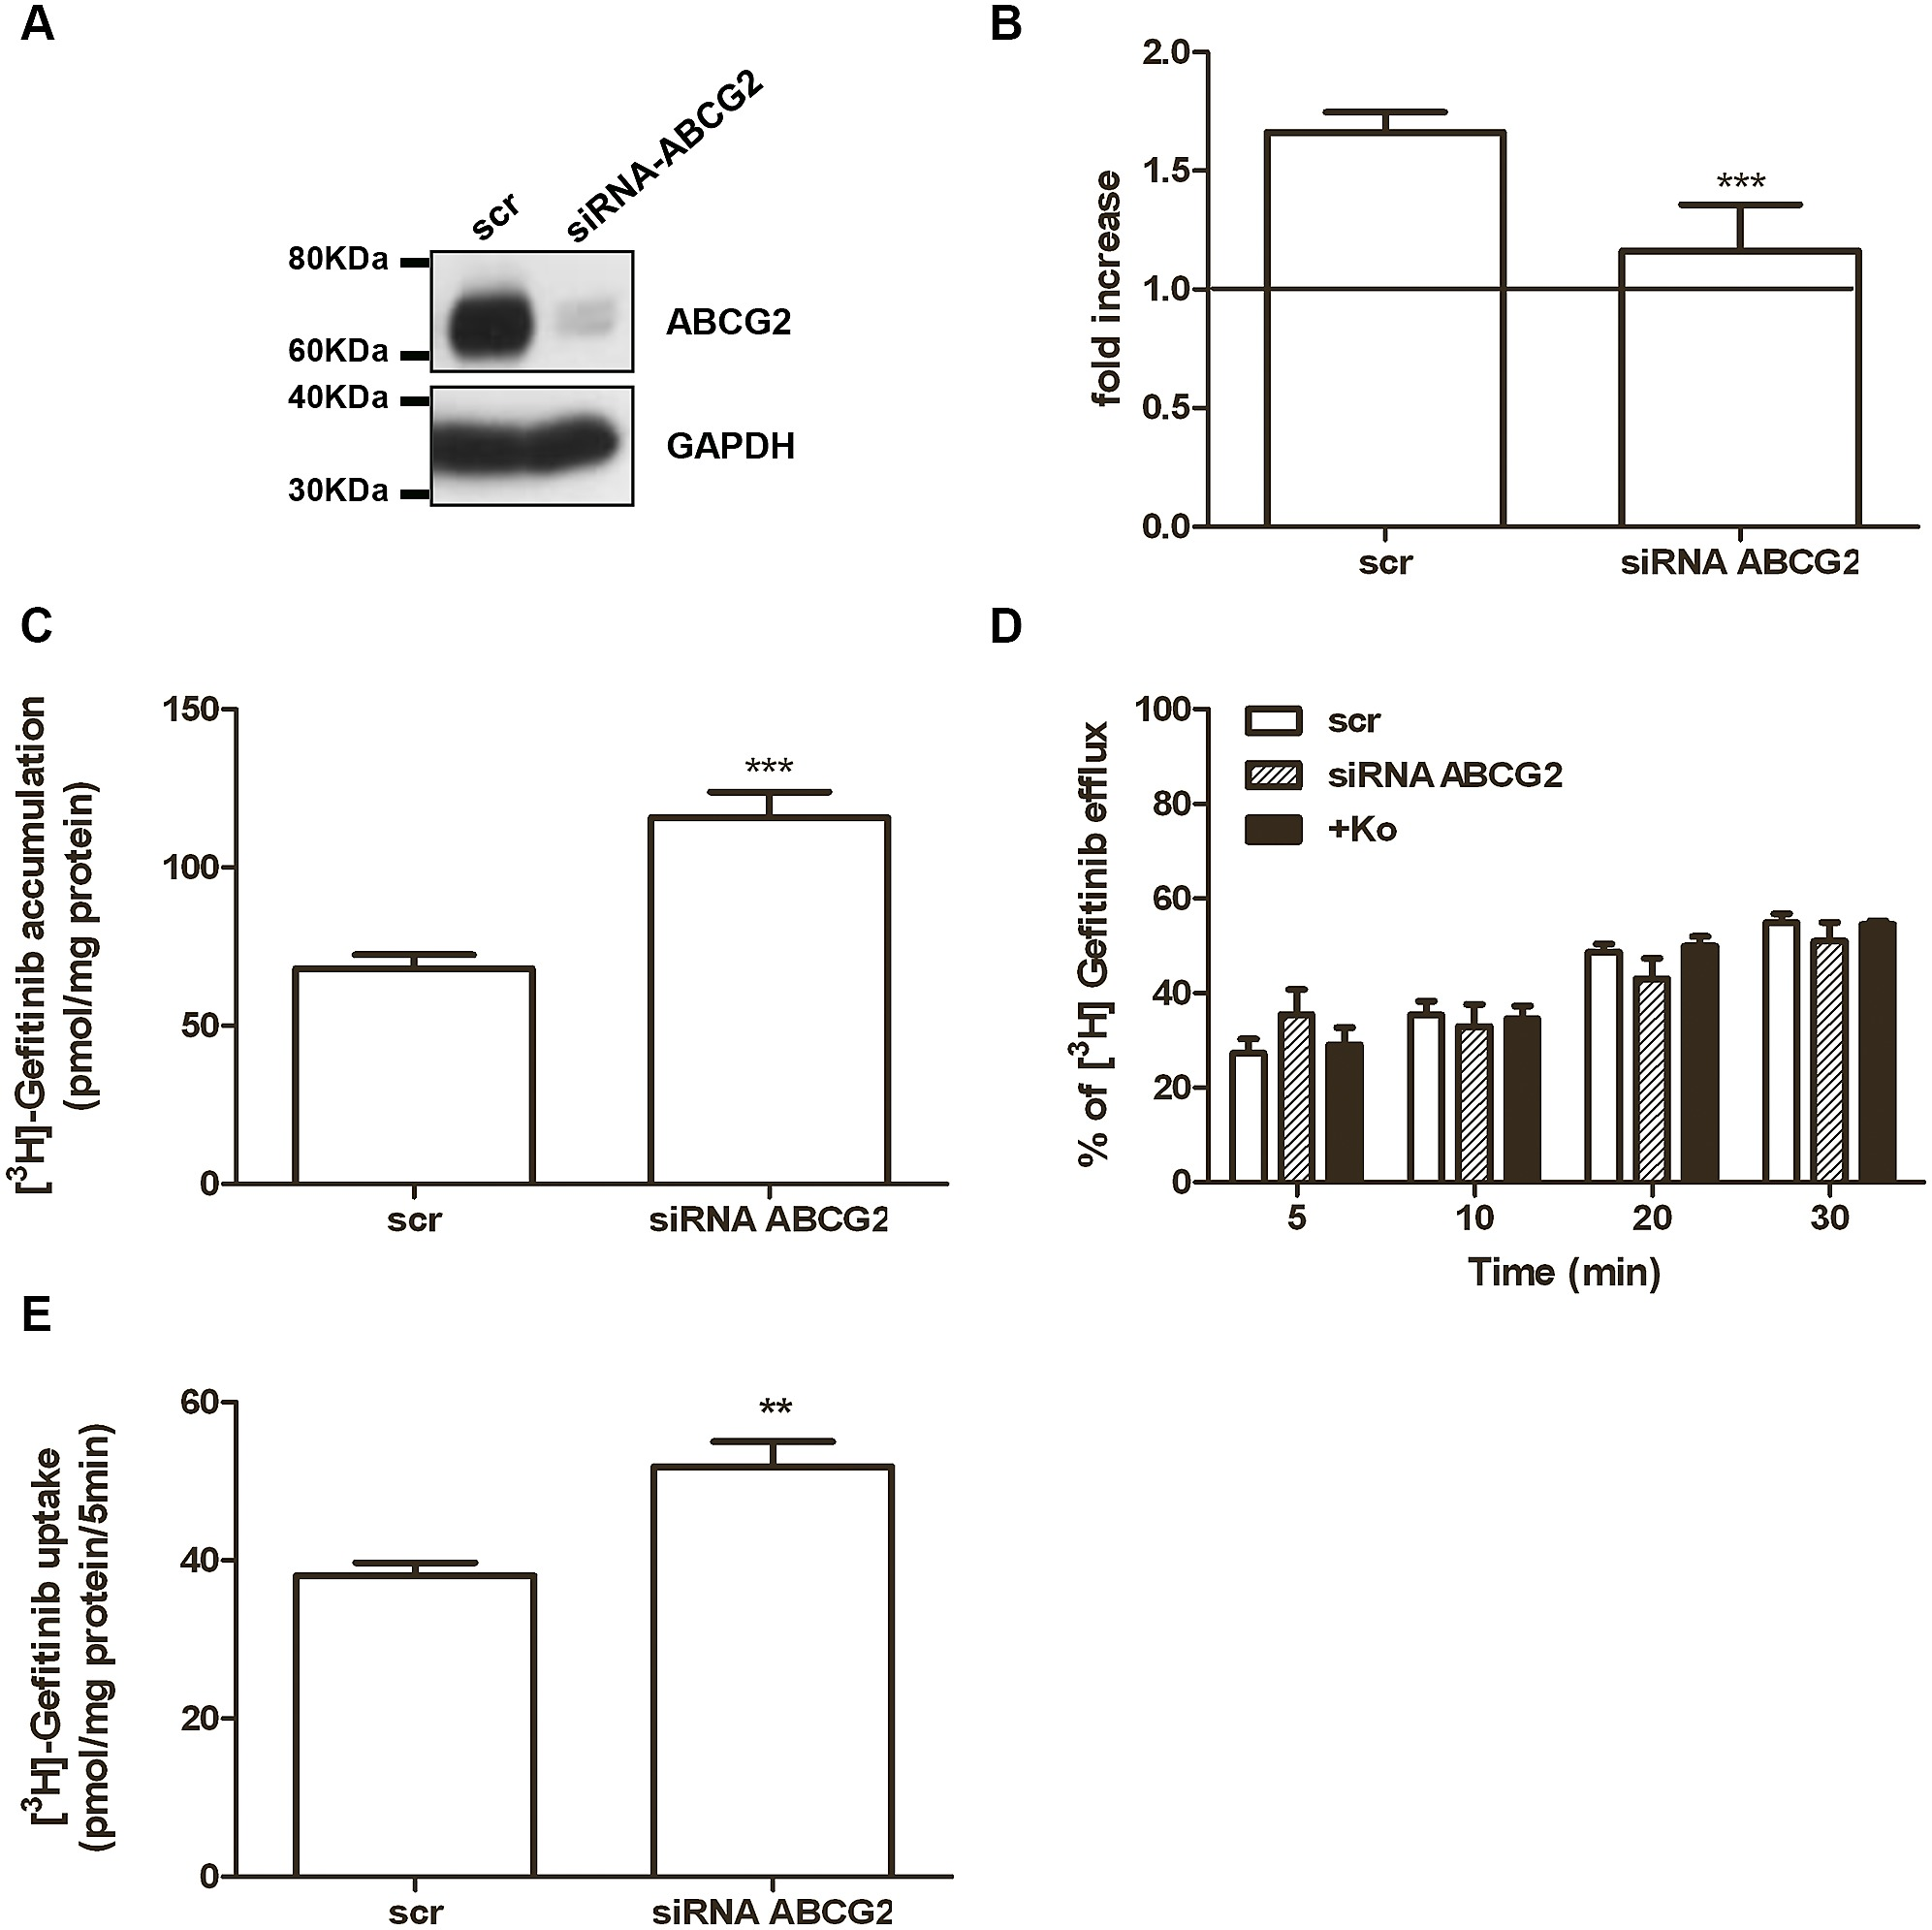 Effect Of Abcg2 Silencing On 3hgefitinib Accumulation Efflux And Musical Effects Circuits Uptake